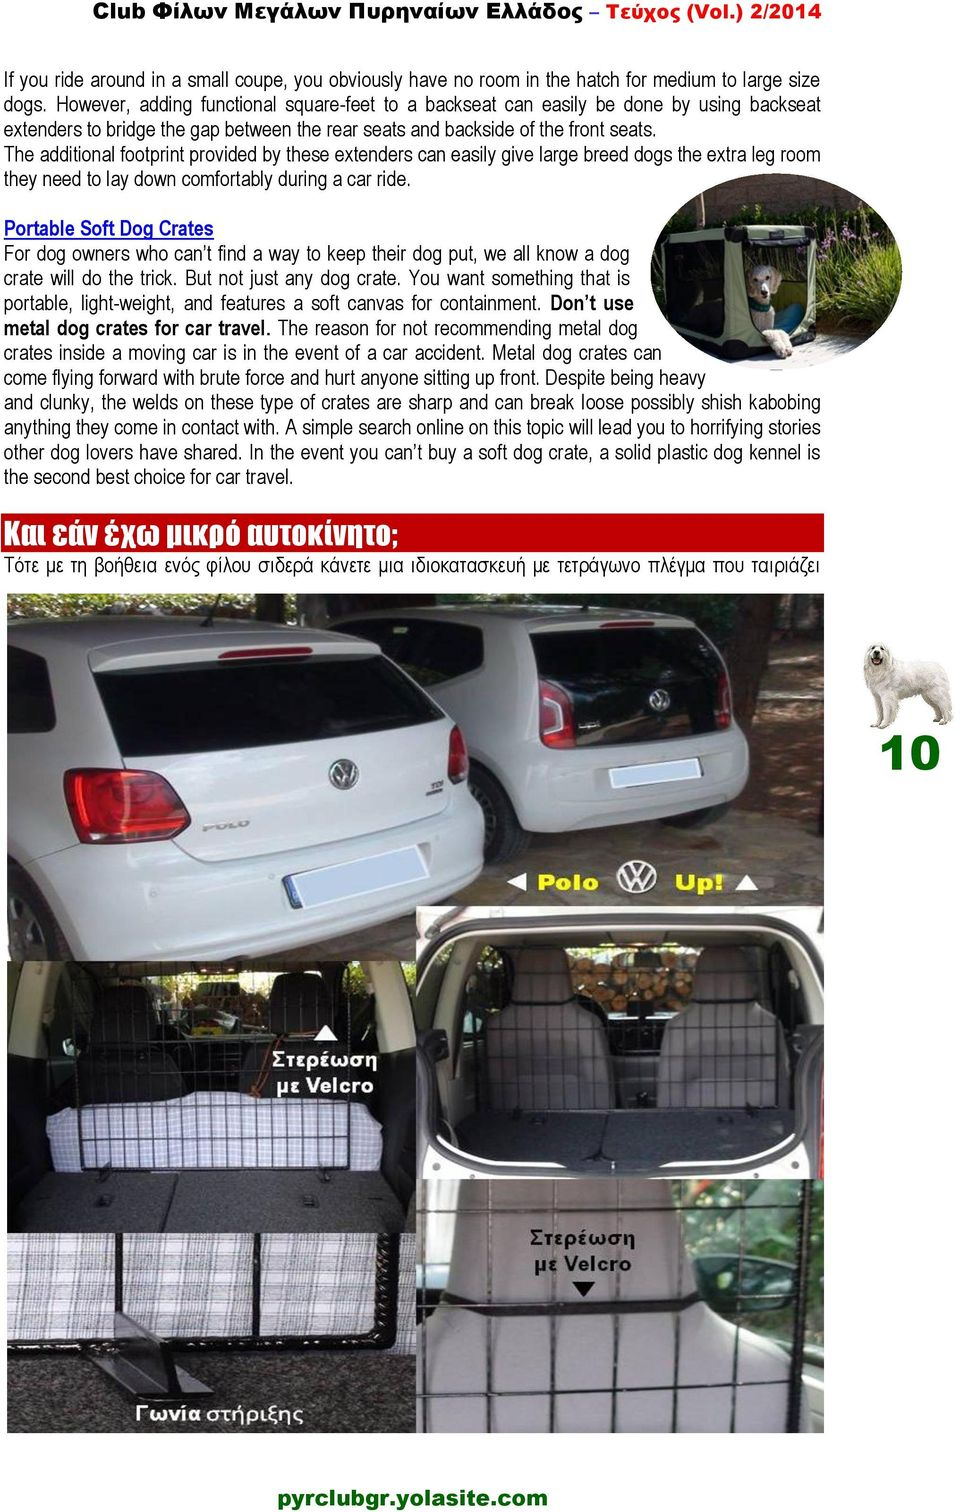 The additional footprint provided by these extenders can easily give large breed dogs the extra leg room they need to lay down comfortably during a car ride.